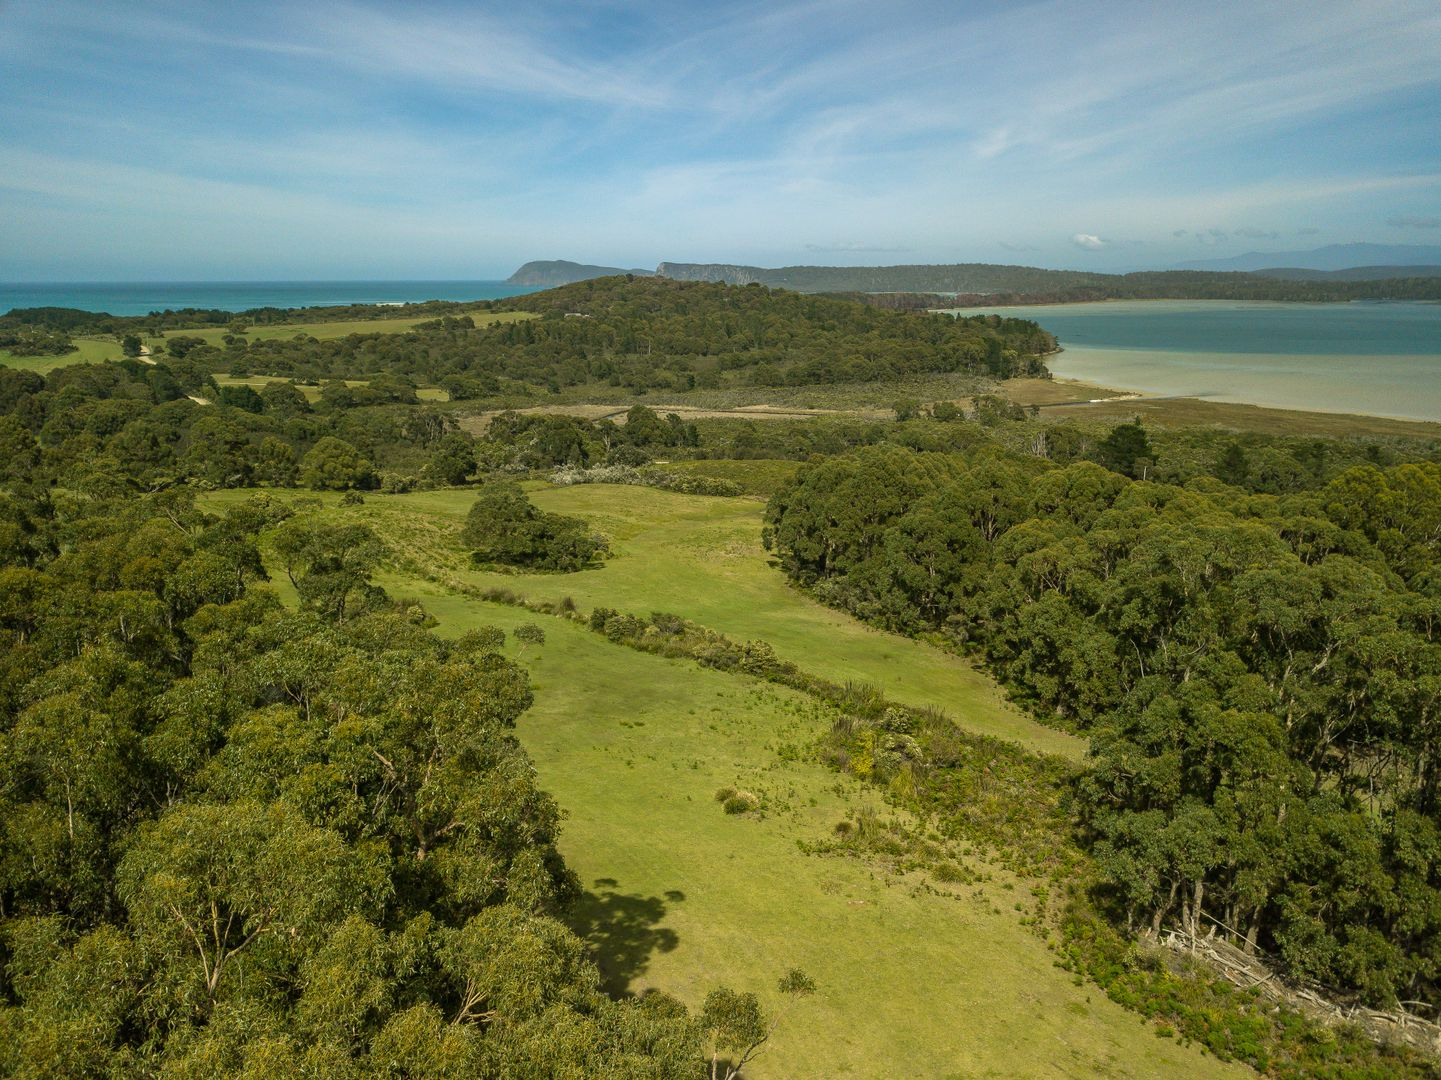 Lot 2/777 Cloudy Bay Road, South Bruny TAS 7150, Image 1